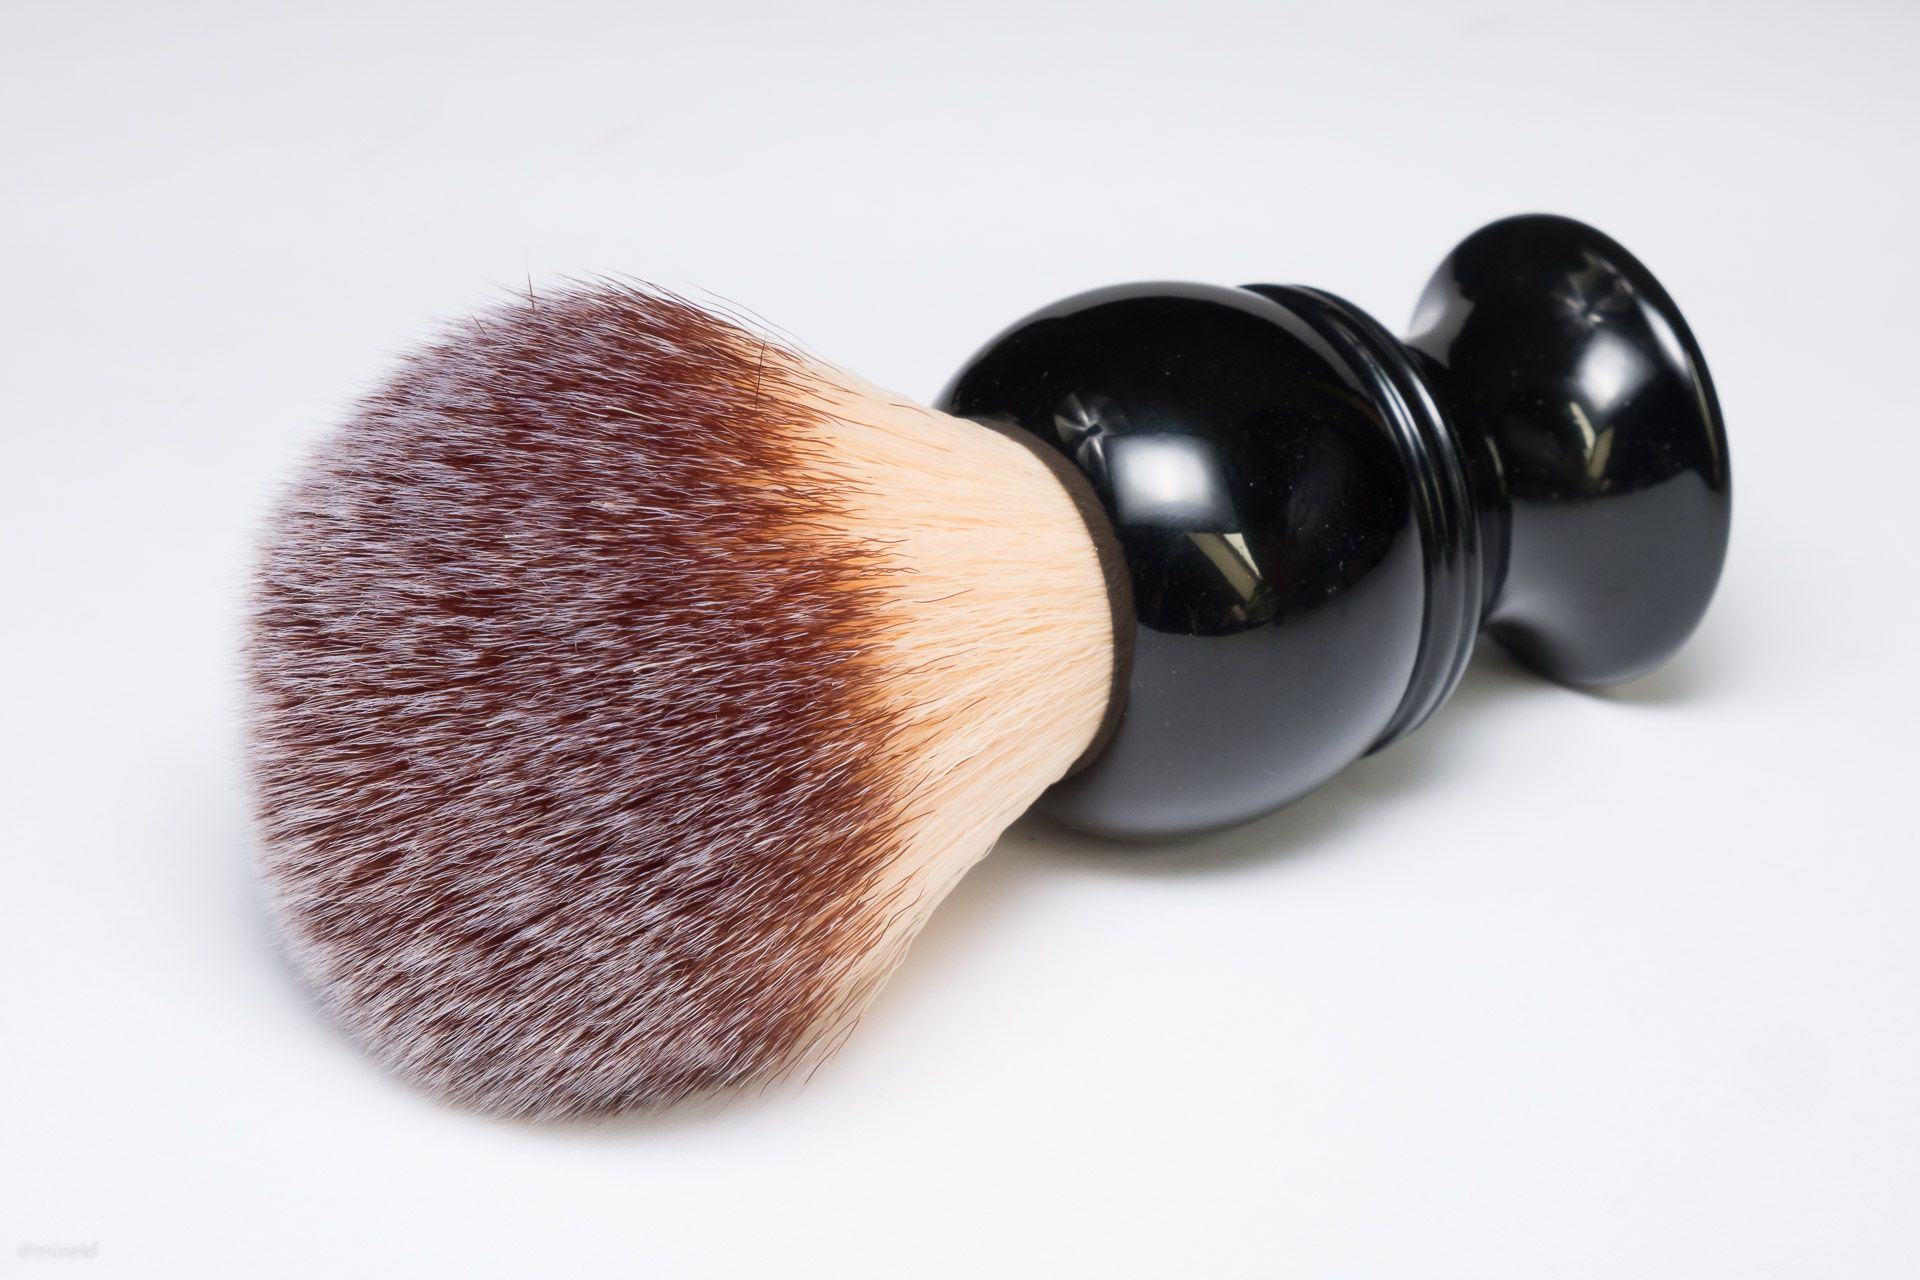 Pędzel Maggard Razors 24mm Synthetic Shaving Brush, Black Handle